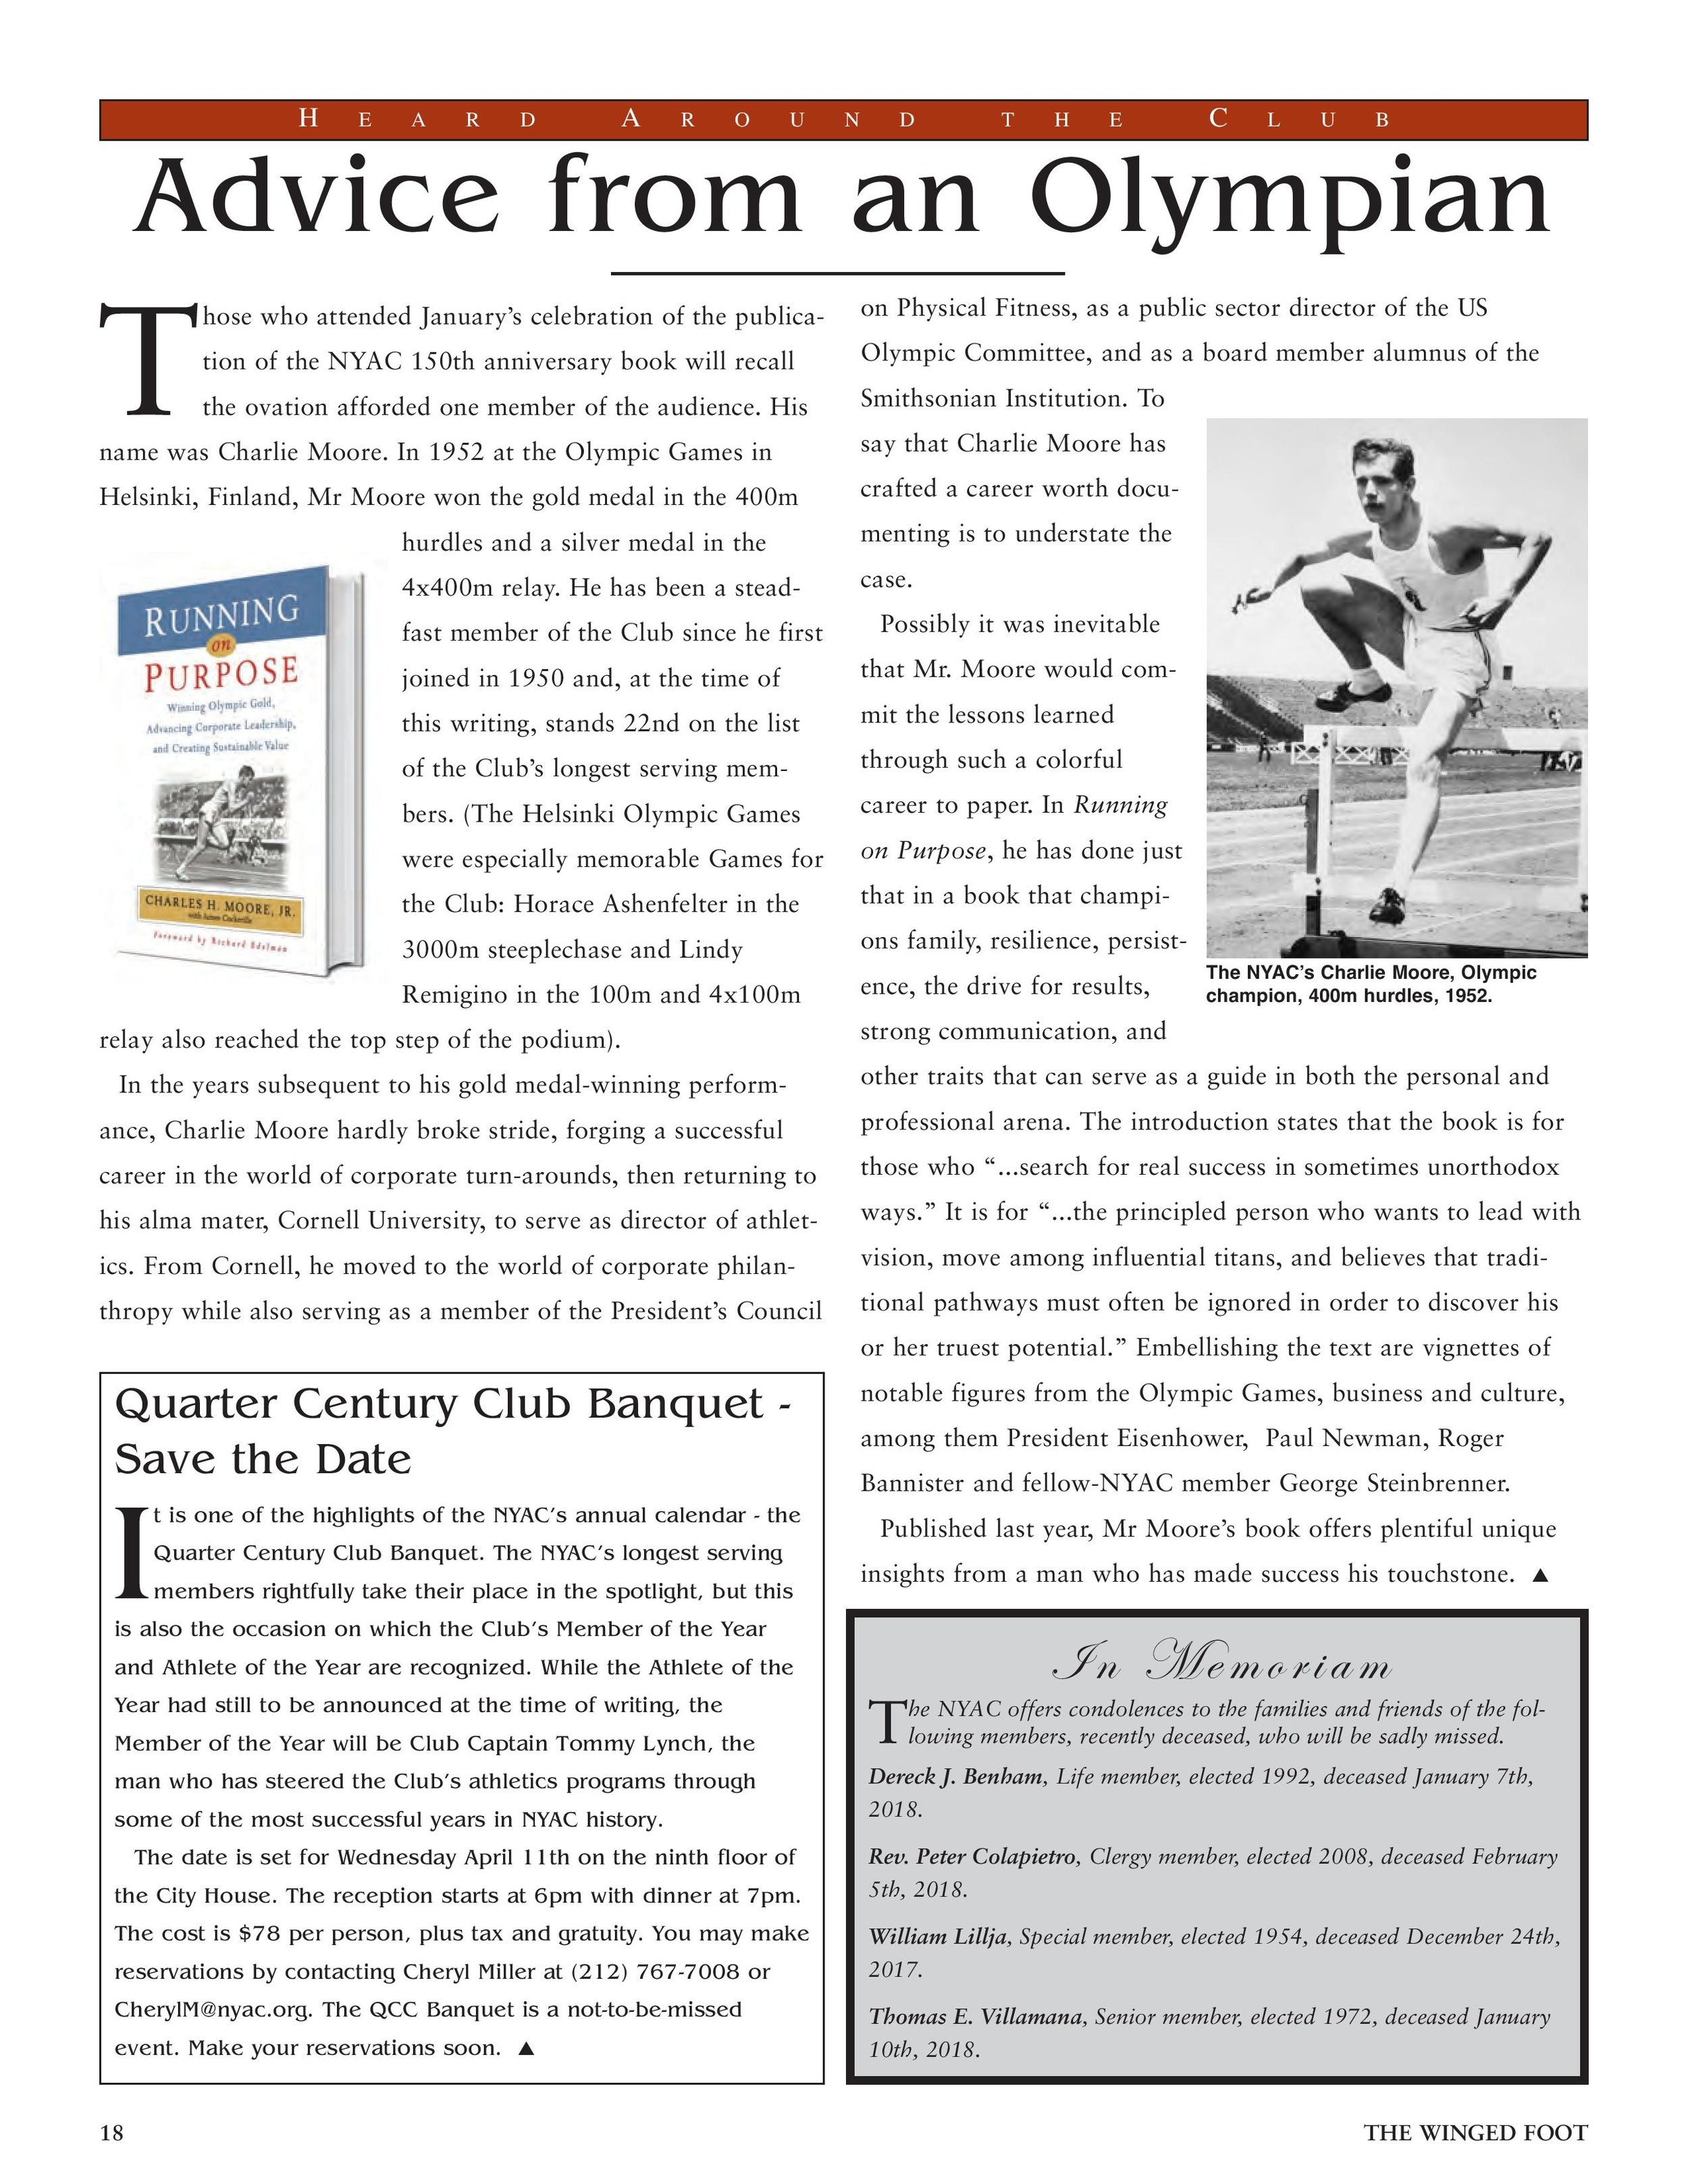 Winged Foot Article Charles Moore-page-001.jpg